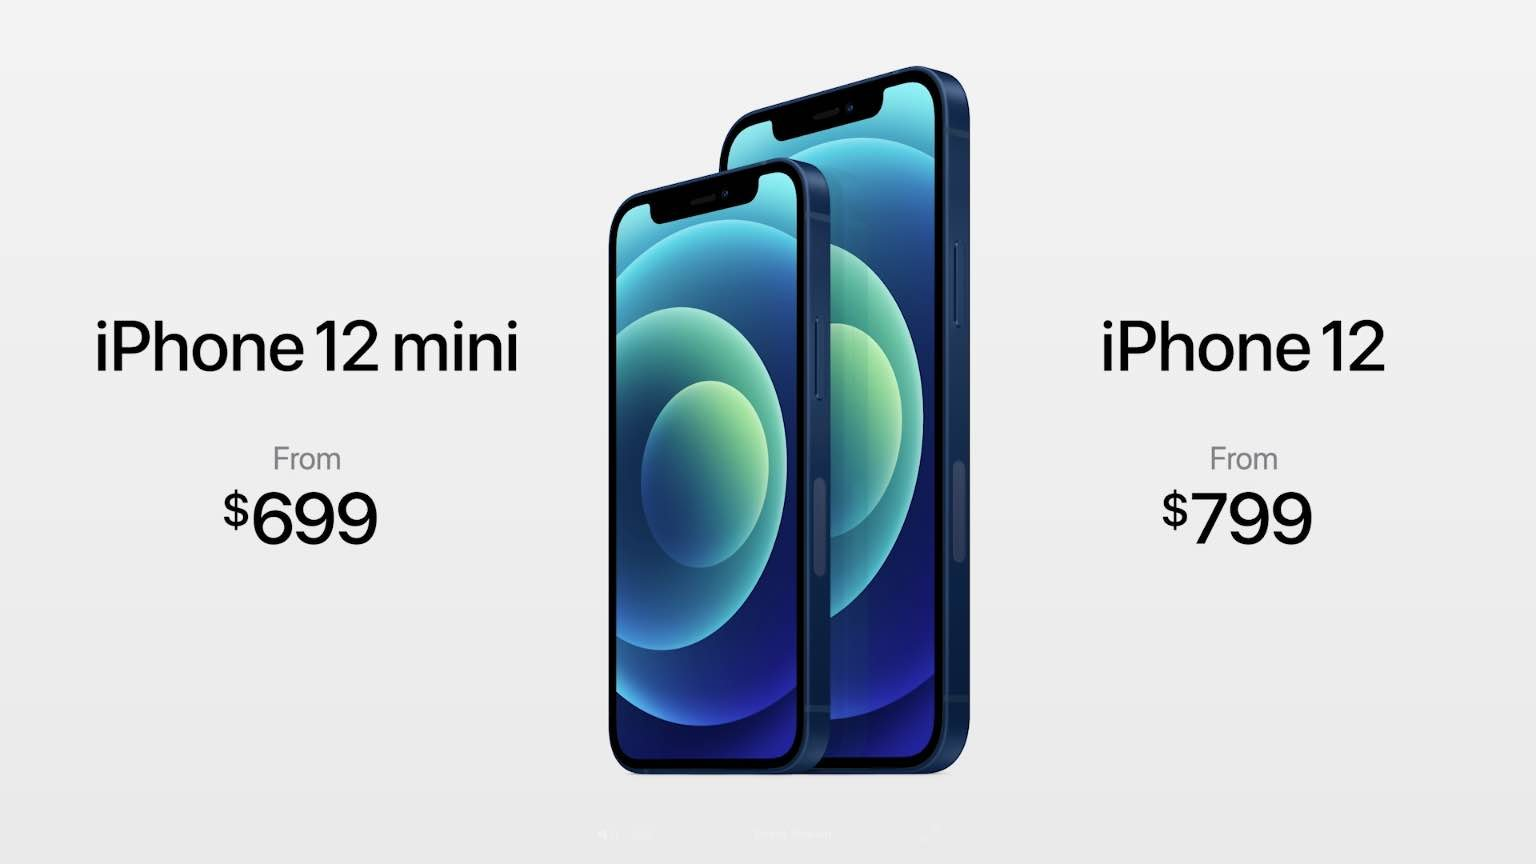 Apple Unveiled iPhone 12 and iPhone 12 Mini With 5G